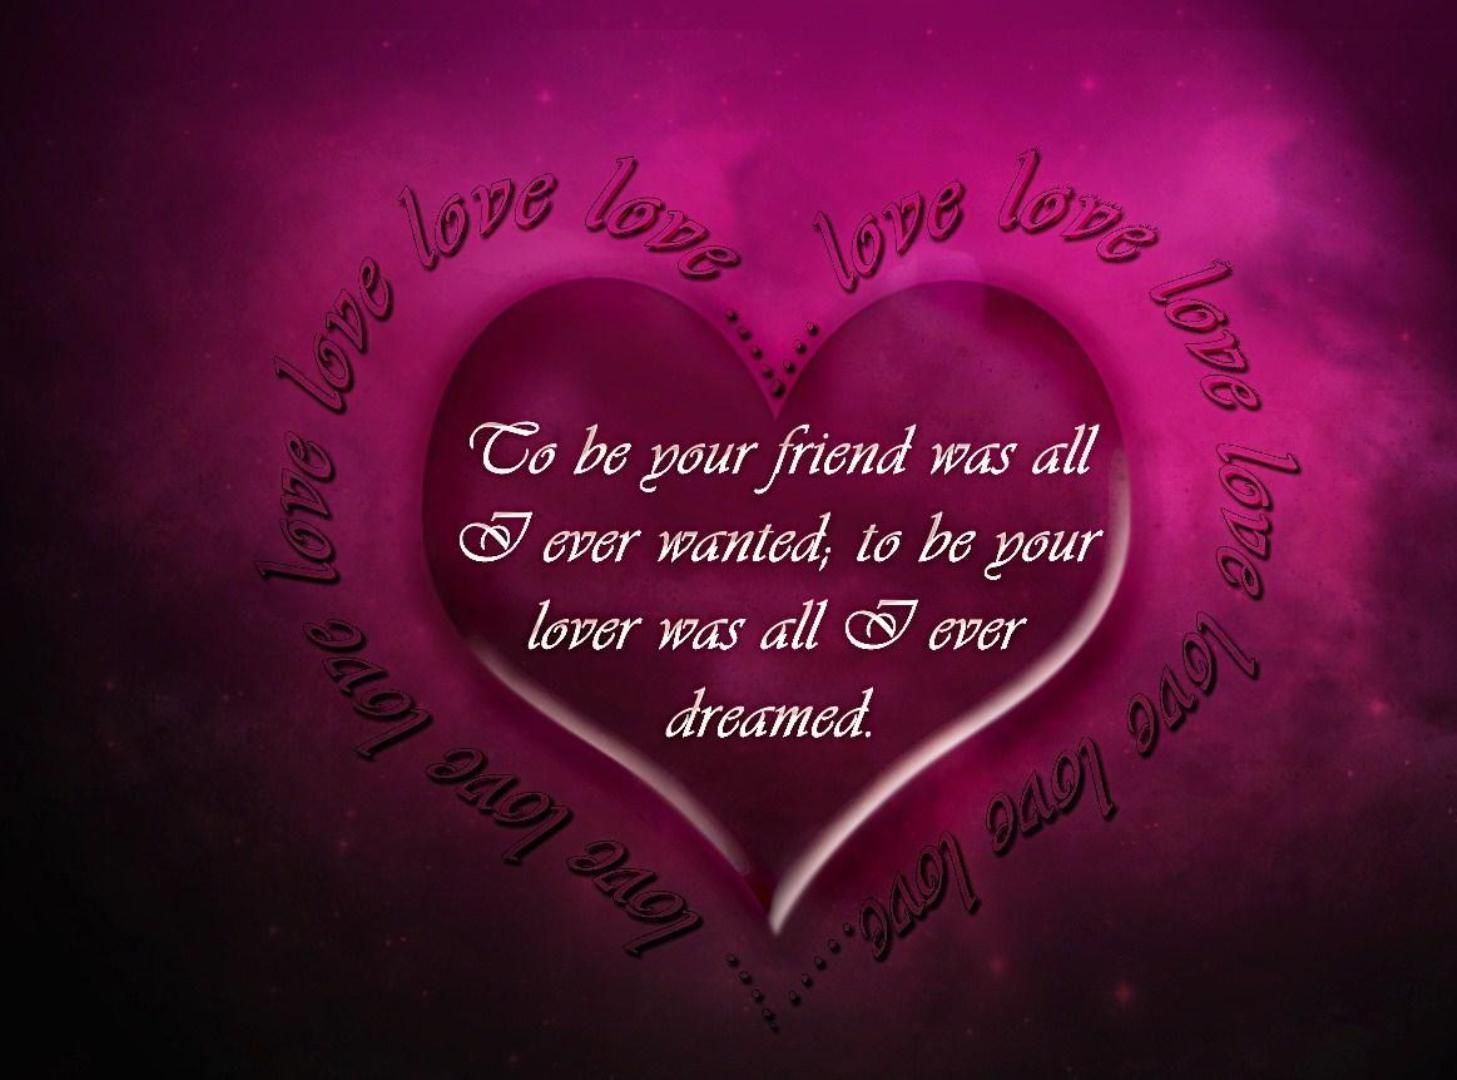 Valentines Day Quotes HD Wallpapers 2016 Free Download